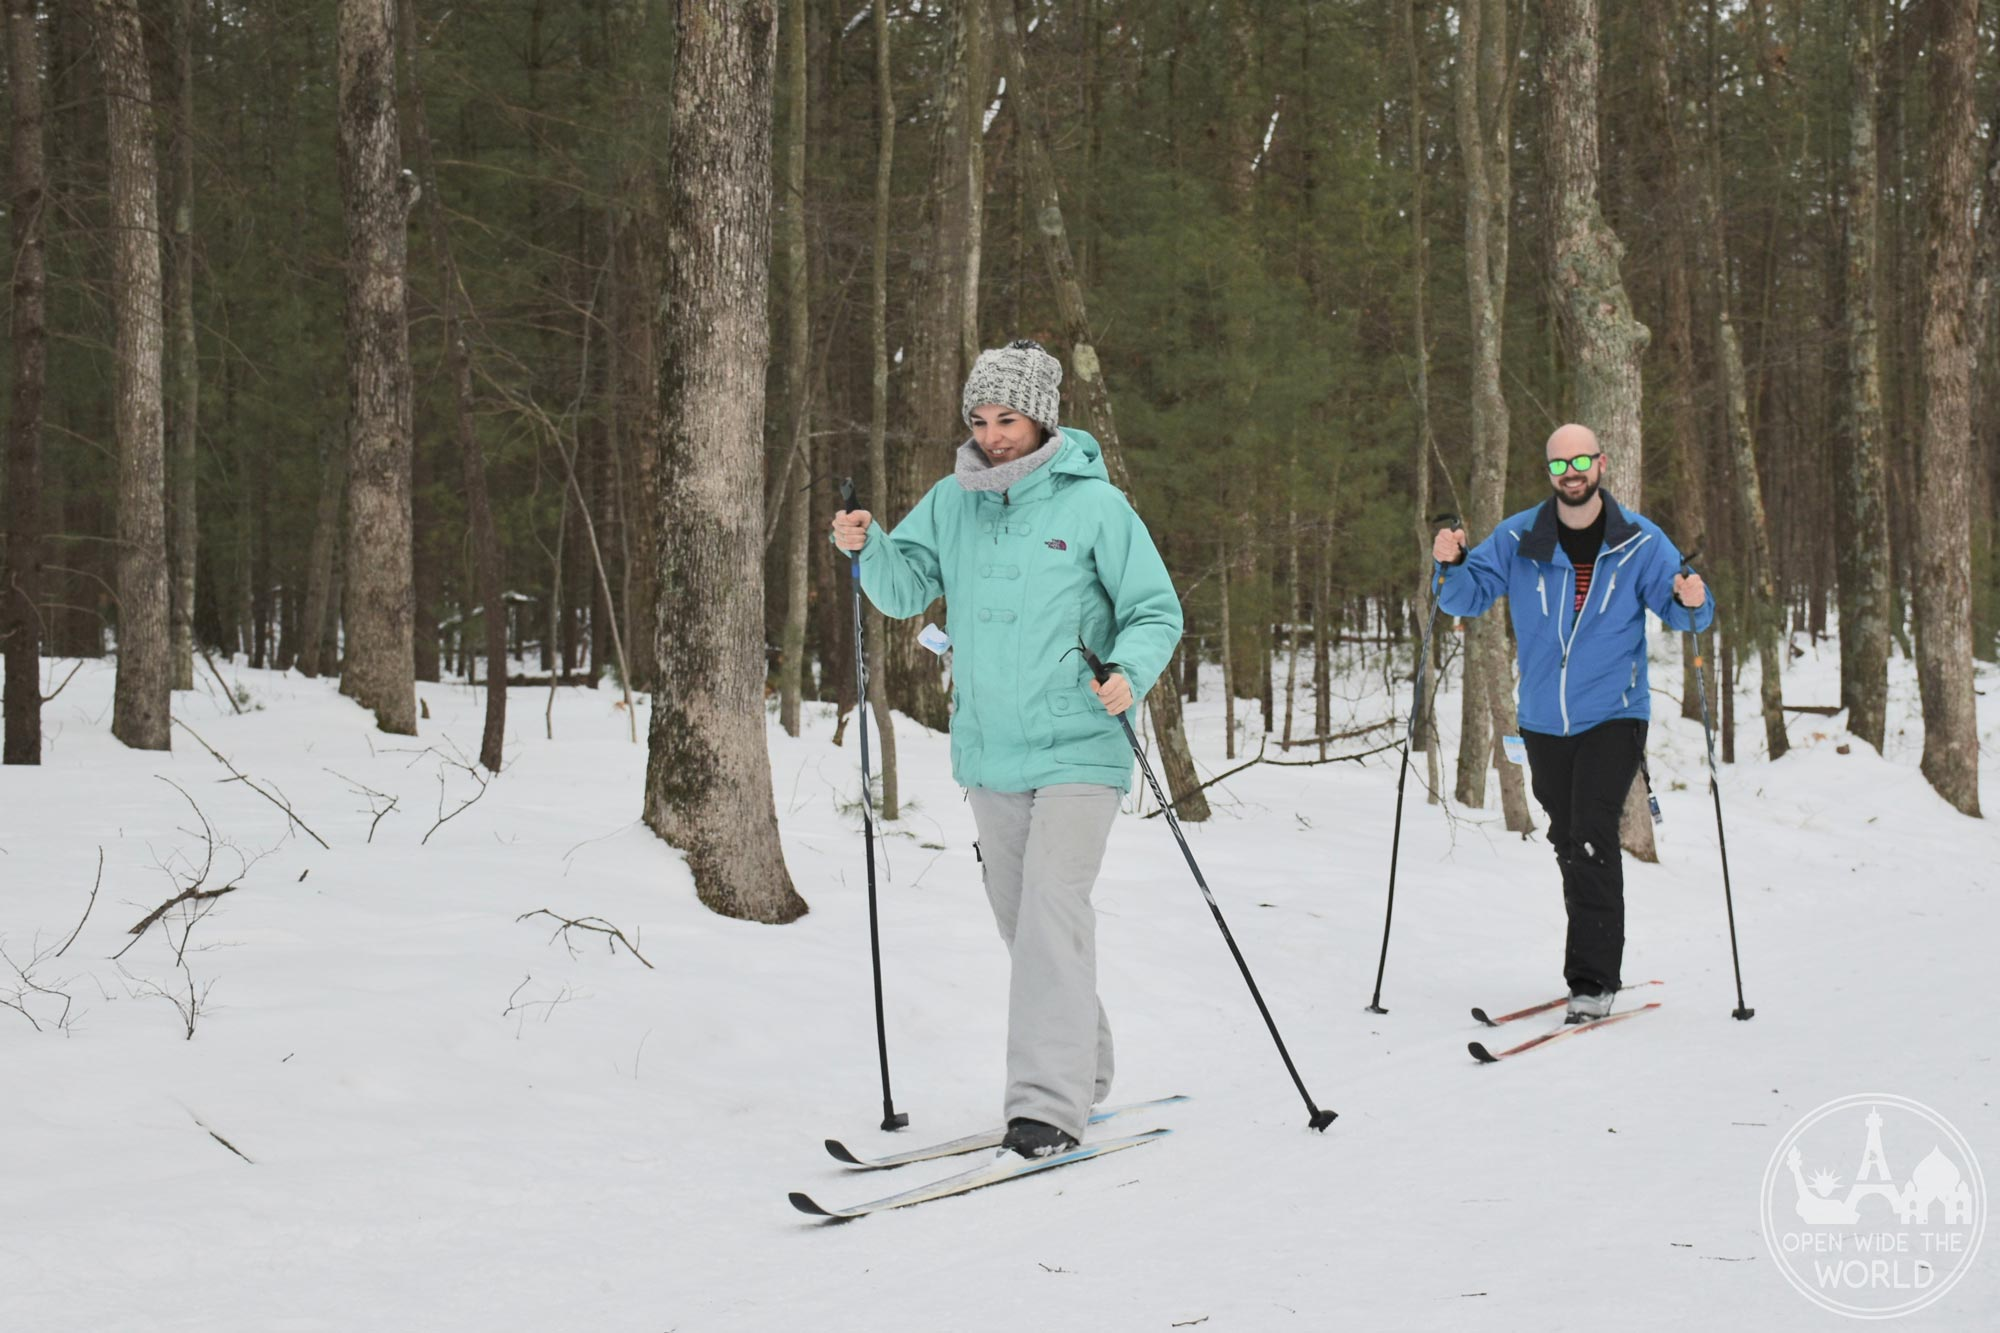 Cross-country skiing in Muskegon Winter Sports Complex is perfect for beginners and expert skiers! Fun winter activities in West Michigan #xcountryskiing #openwidetheworld